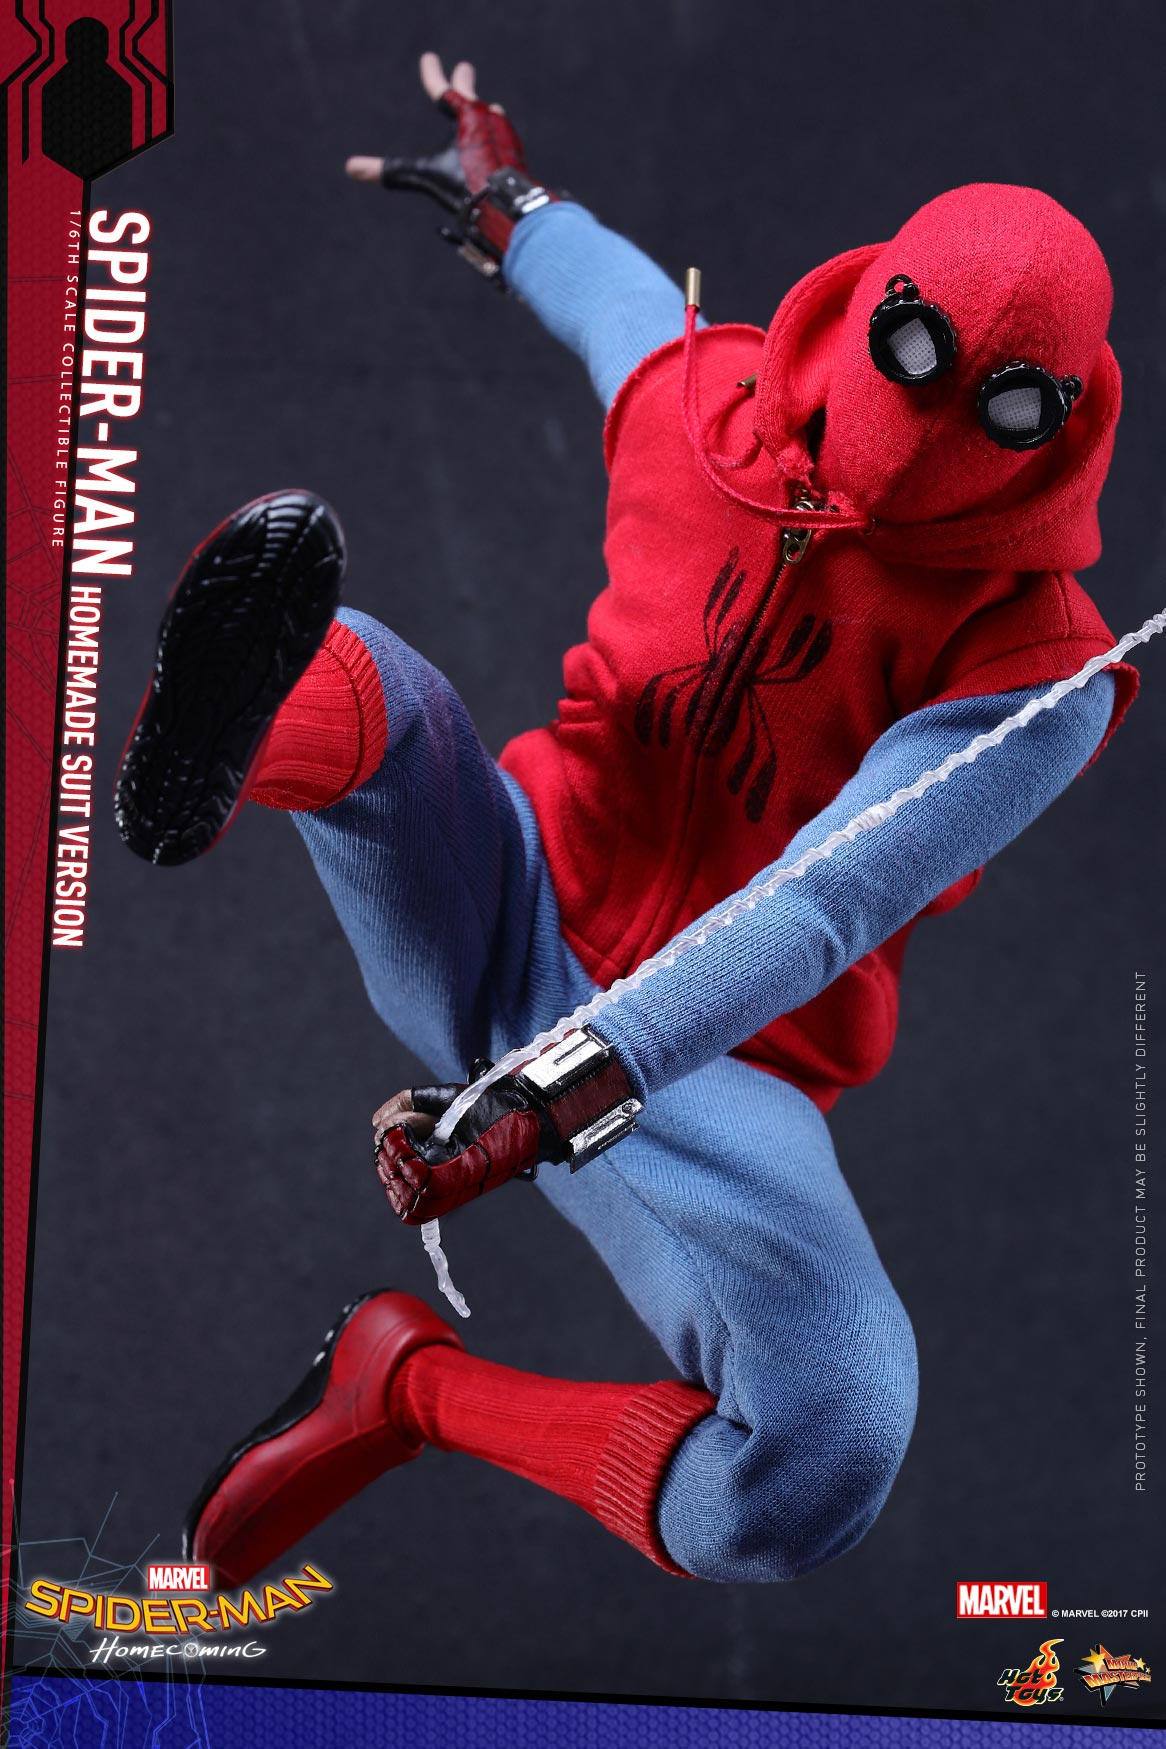 Hot-Toys---Spider-Man-Homecoming---Spider-Man-(Homemade-Suit)-collectible-figure_PR8